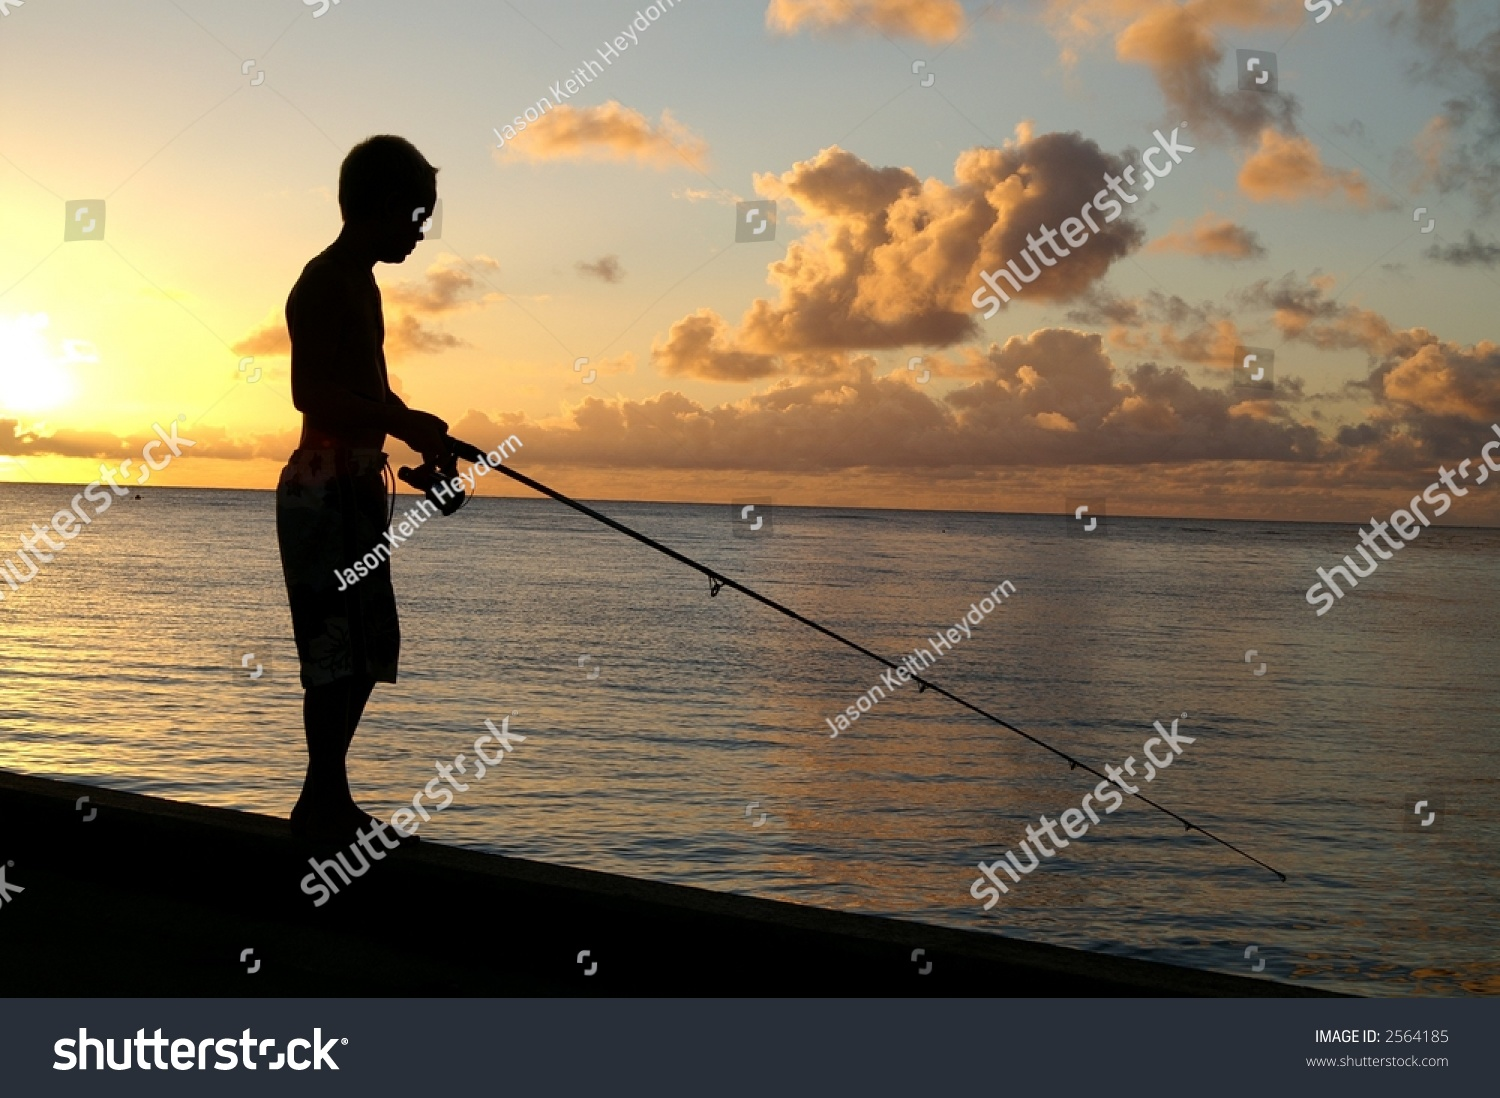 Boy fishing off pier stock photo 2564185 shutterstock for Fishing off a pier